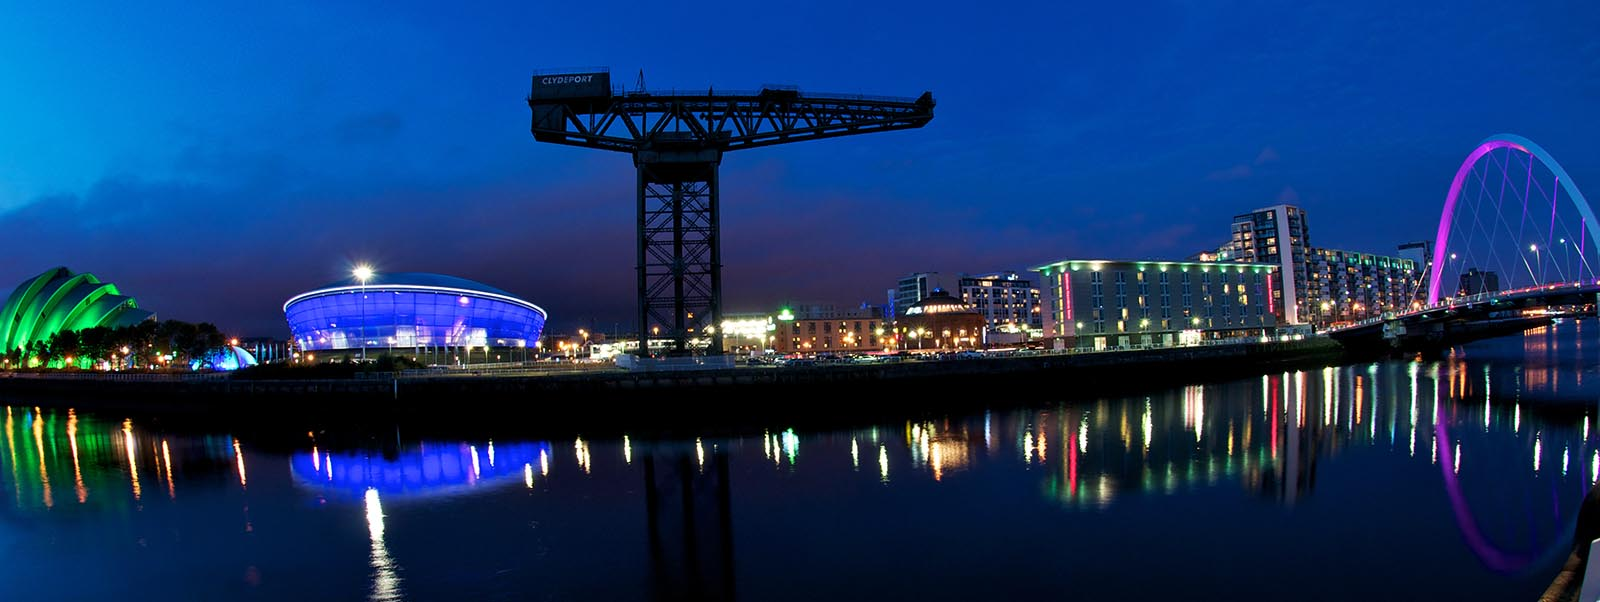 The River Clyde, Glasgow, at night. The Hydro, Clyde Auditorium and Finnieston Crane in shot